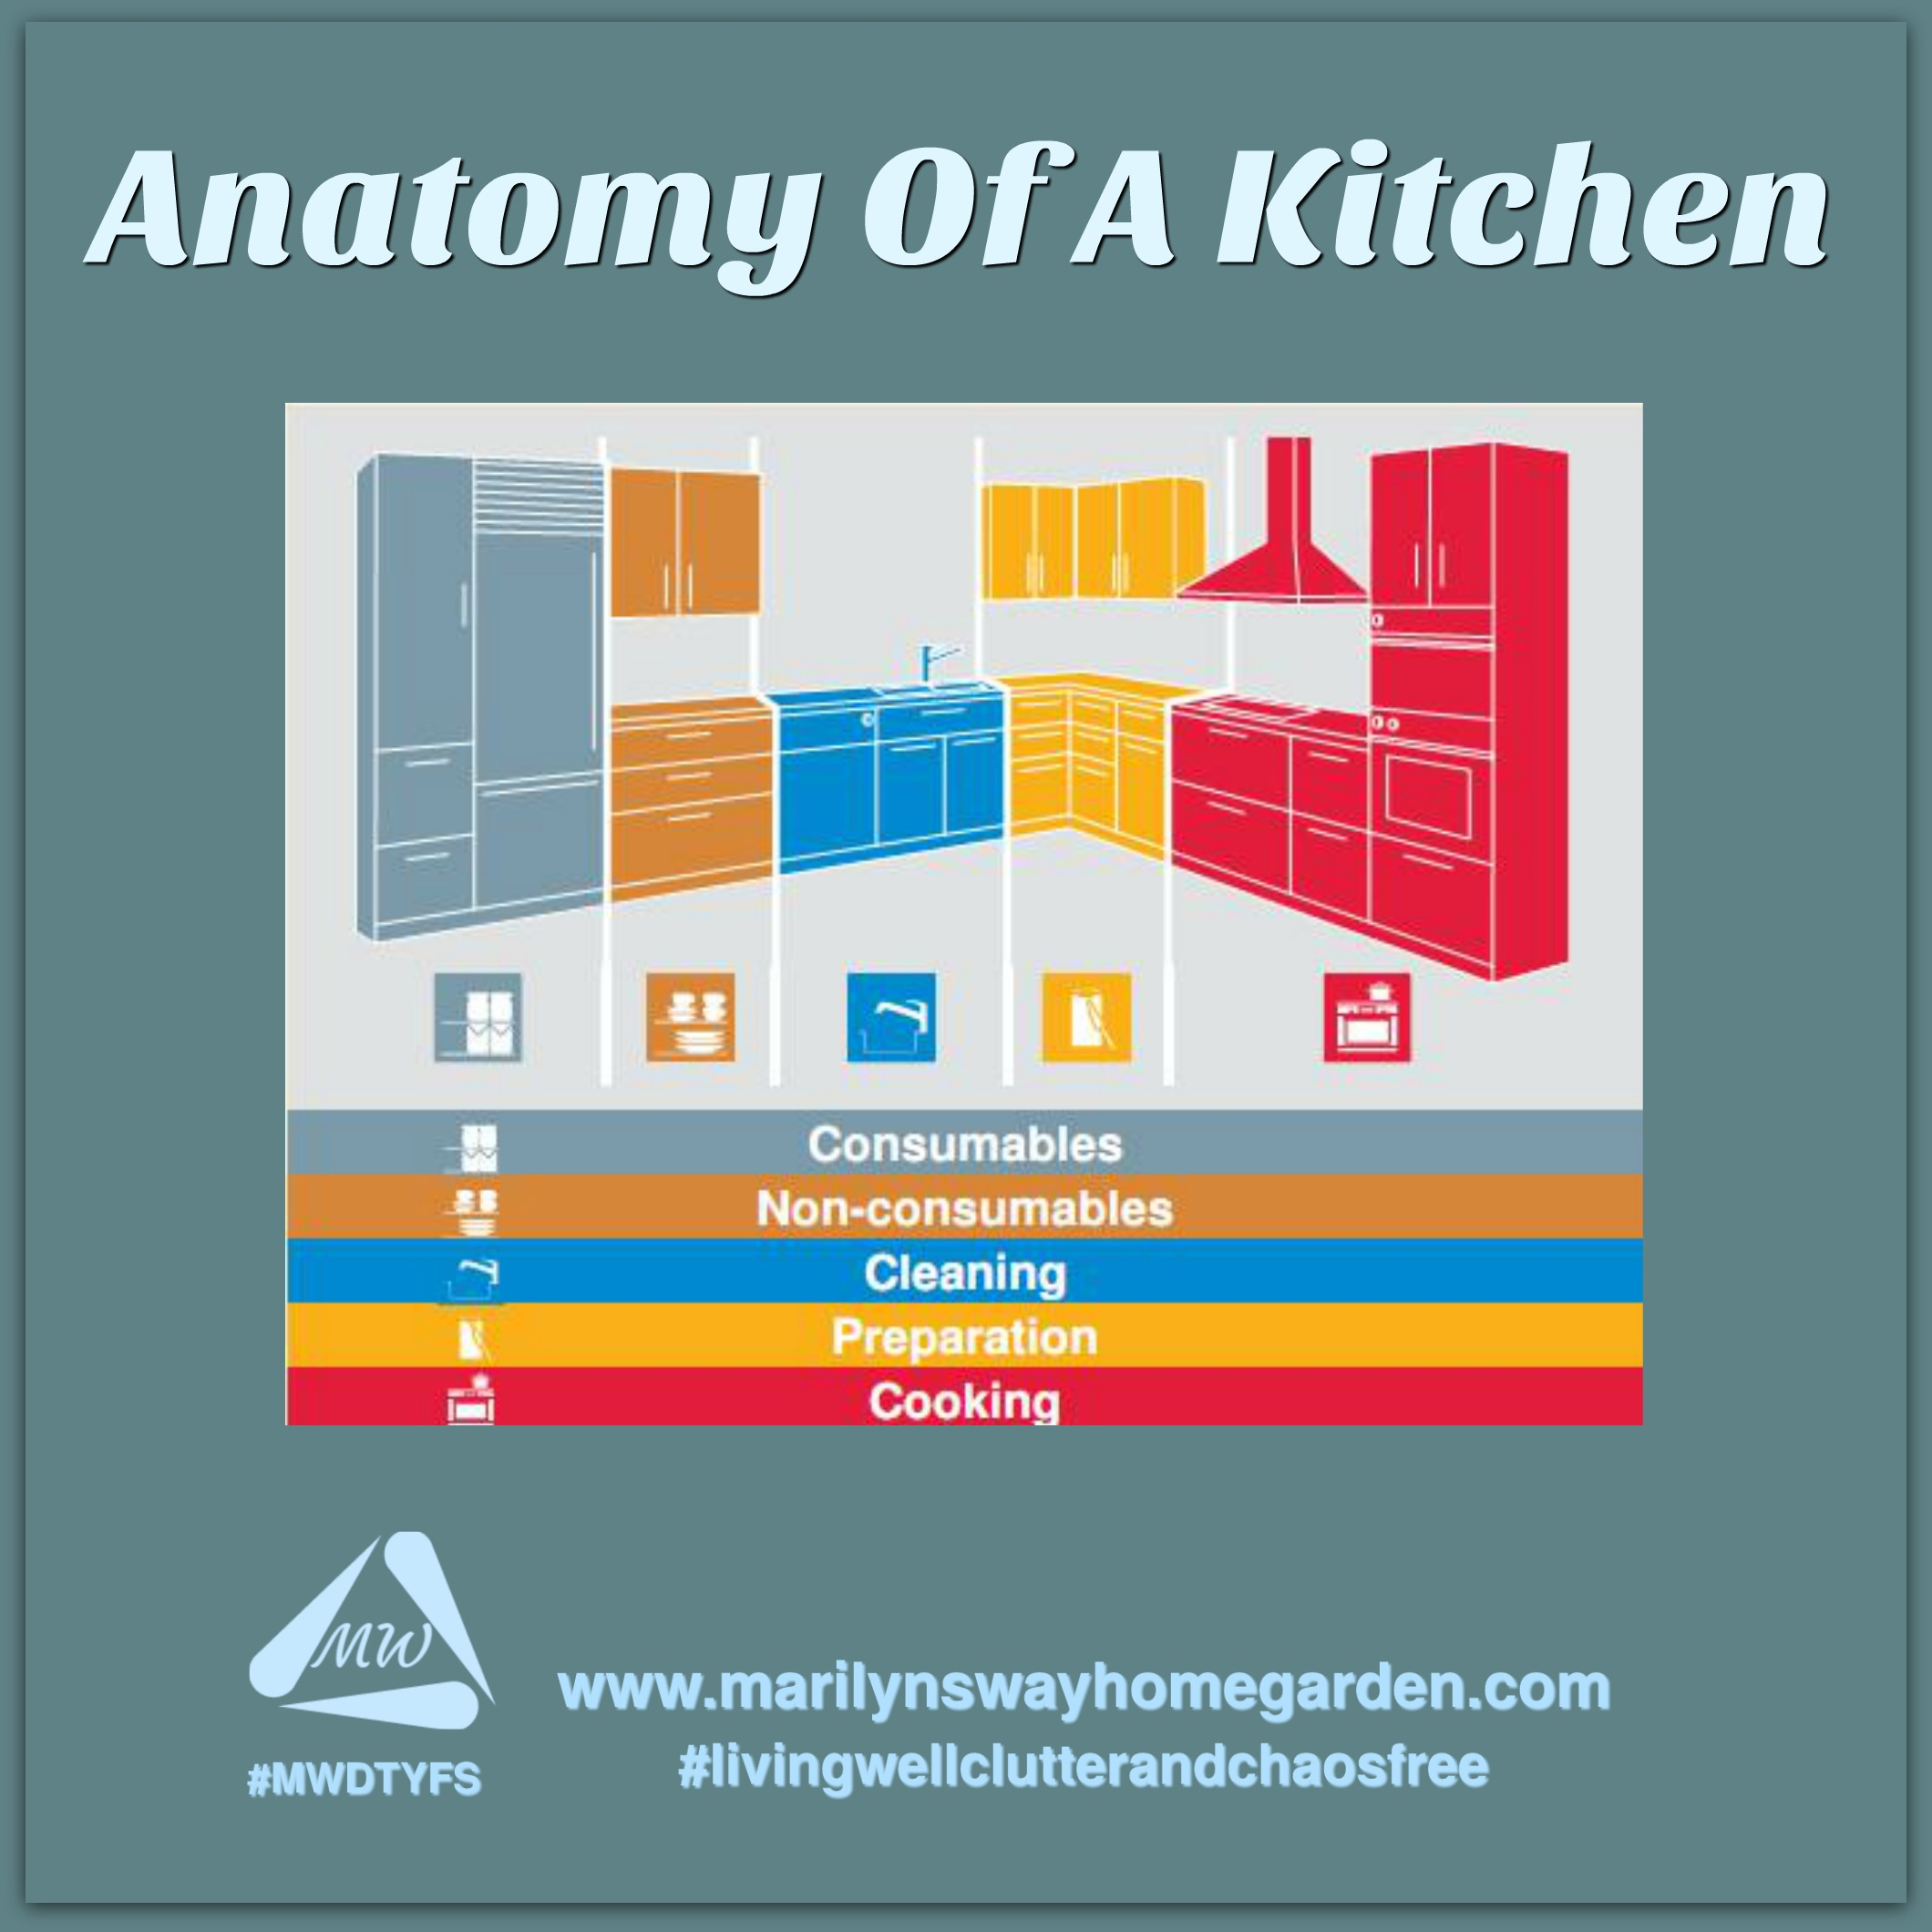 Anatomy Of A Kitchen.